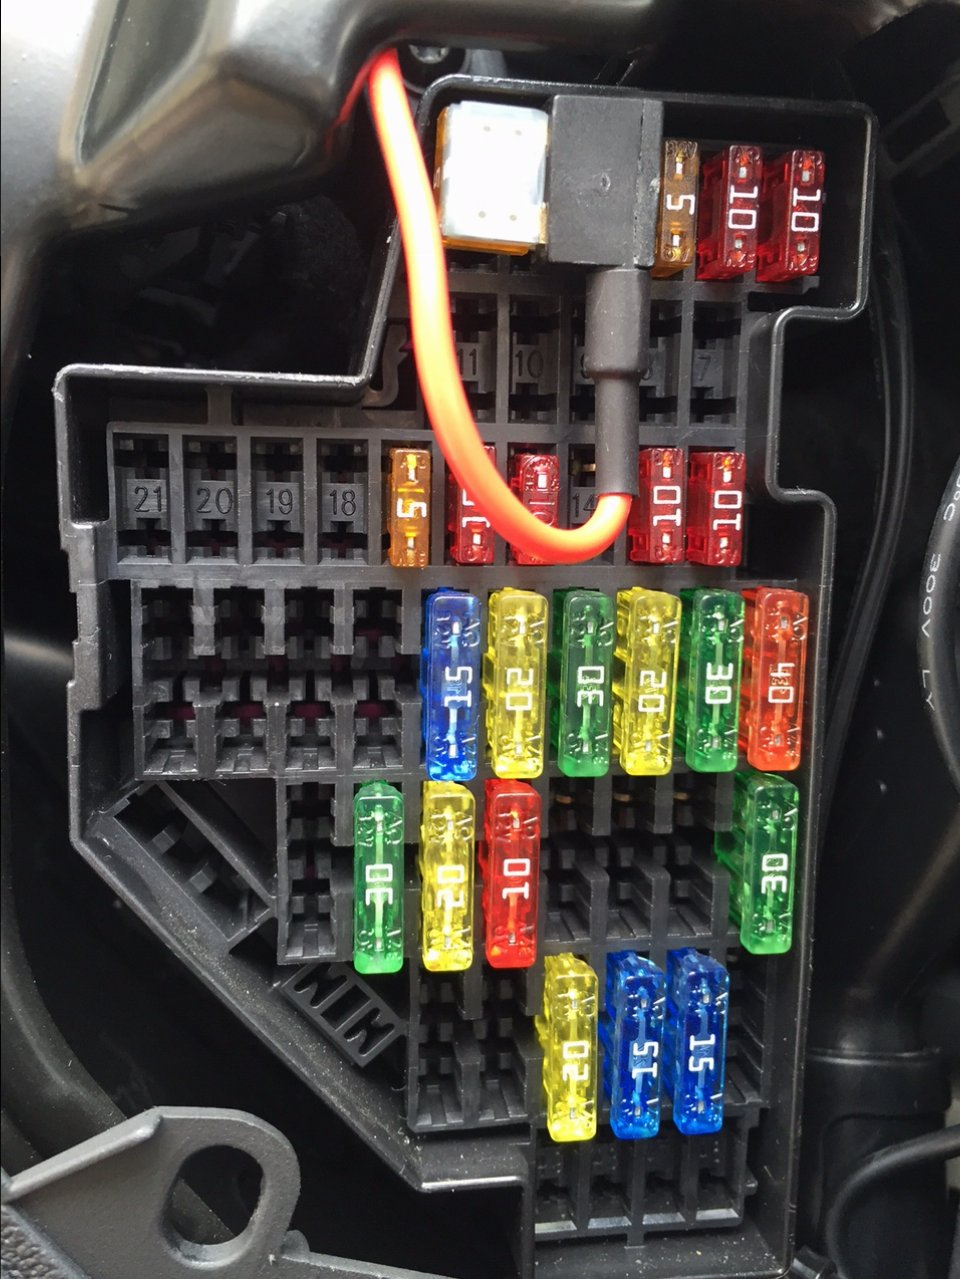 Audi Tt Mk1 Haldex Fuse Location Box Mk2 However On The Inside Of Cover It Says That Should Be